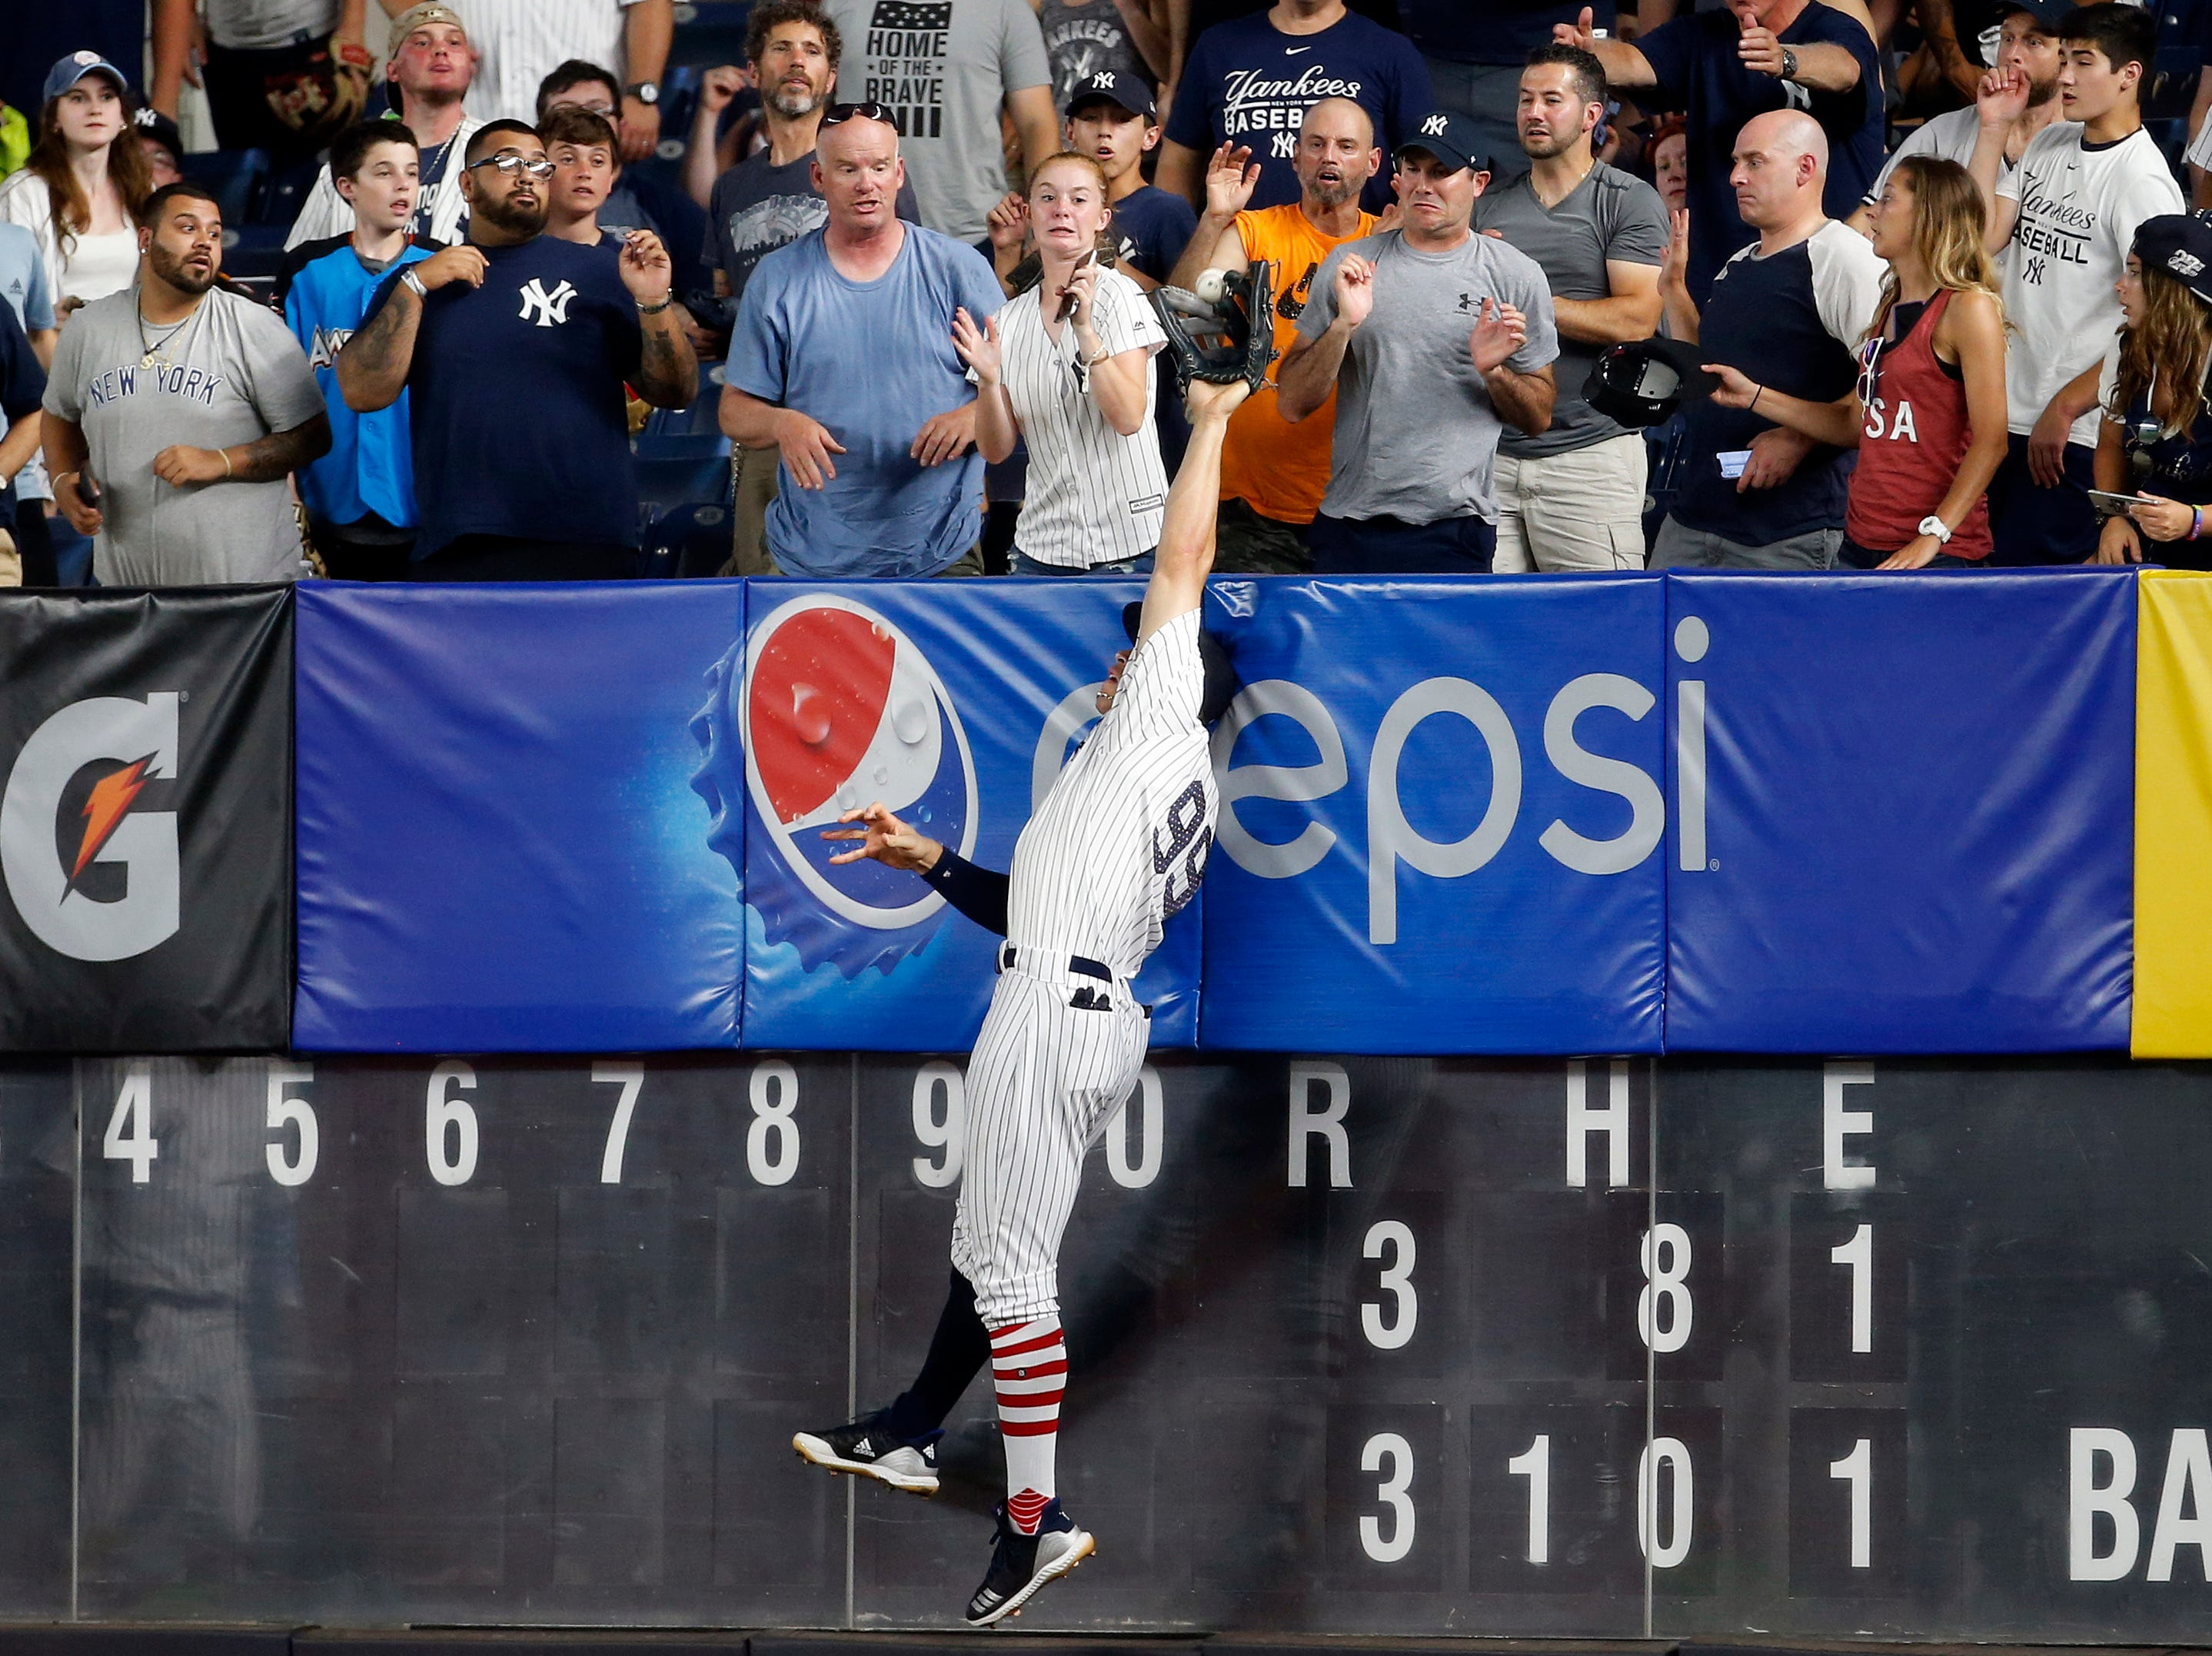 July 2: New York Yankees right fielder Aaron Judge is unable to make a catch on a two-run home run by Atlanta Braves left fielder Ronald Acuna Jr. (13) during the 11th inning at Yankee Stadium.